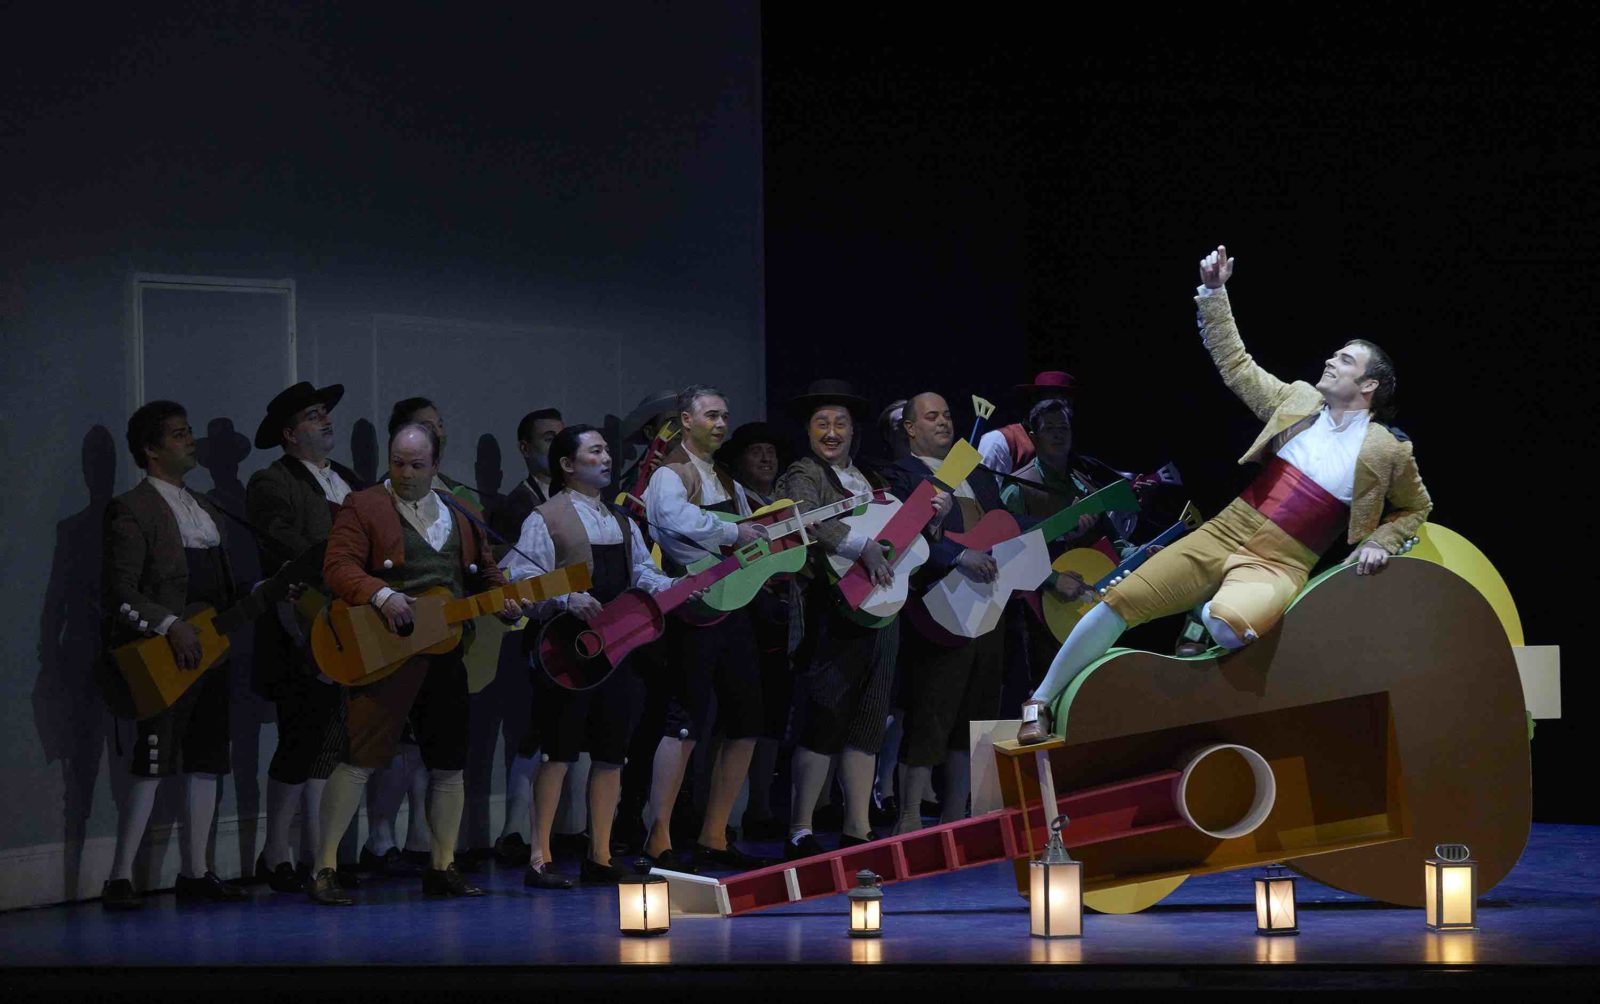 Cast on stage as the Canadian Opera Company 2020 seasons starts